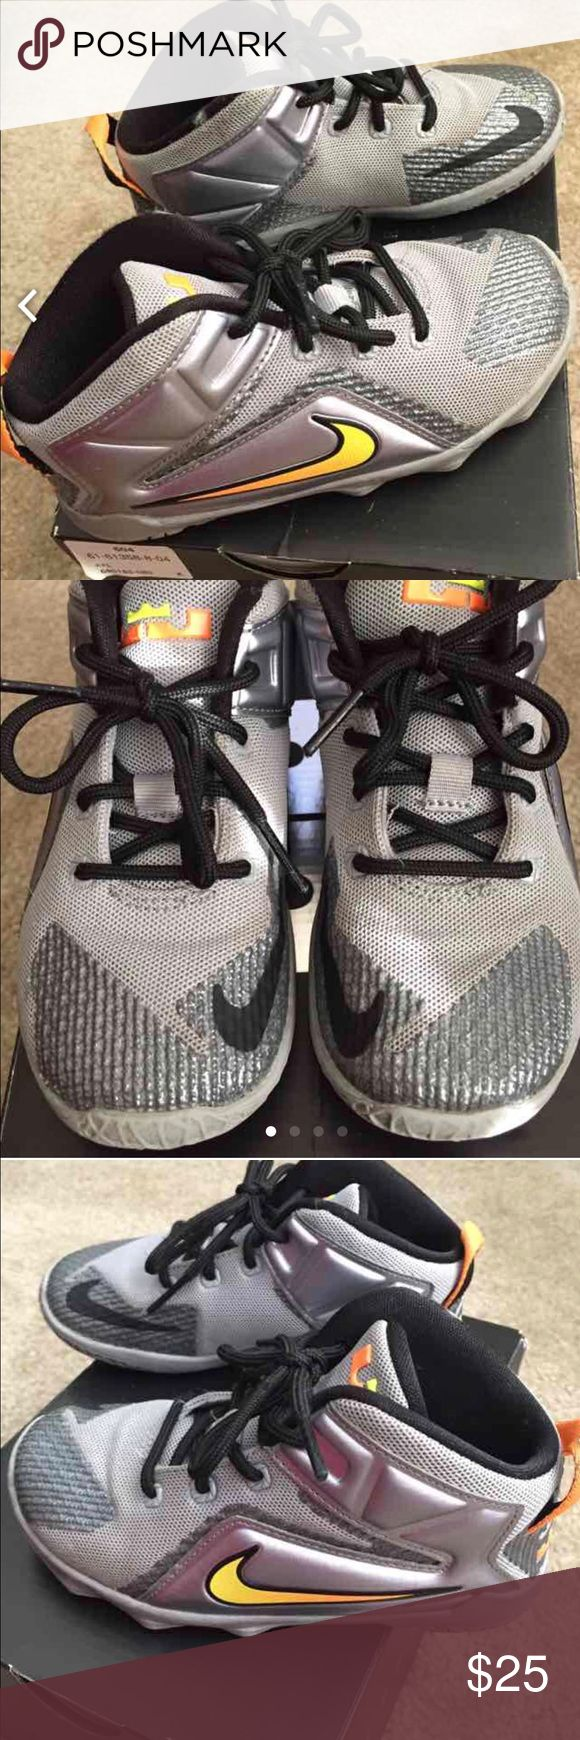 Lebron Xll Toddler wolf grey, citrus, black Lebrons. Great used condition. Lots of life left. Front if ahoe dirty as pictured. I have not yet made an attempt to clean. Will do so before shipping. Box included. Size 10c Nike Shoes Sneakers